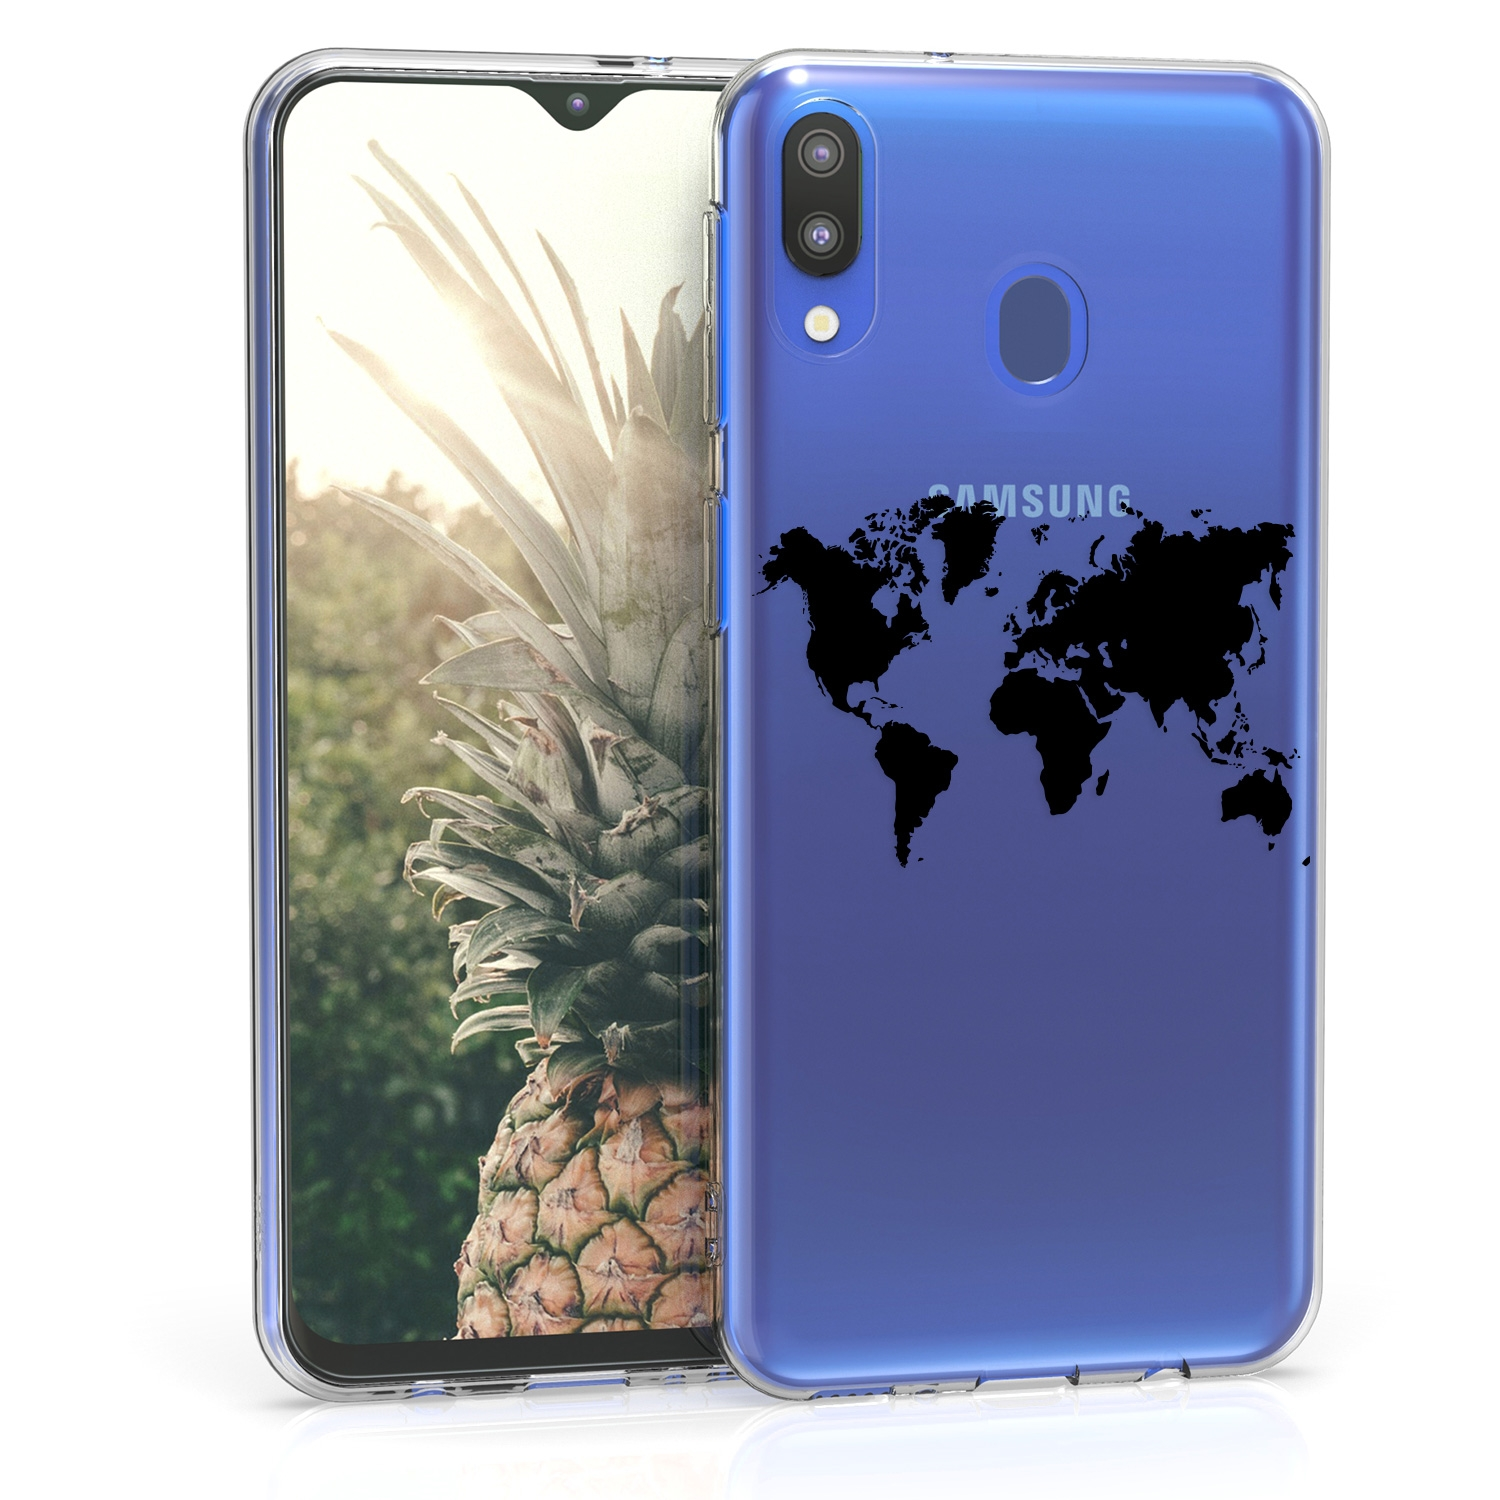 KW Θήκη Σιλικόνης Samsung Galaxy M20 (2019) - Black / Transparent (48312.02)